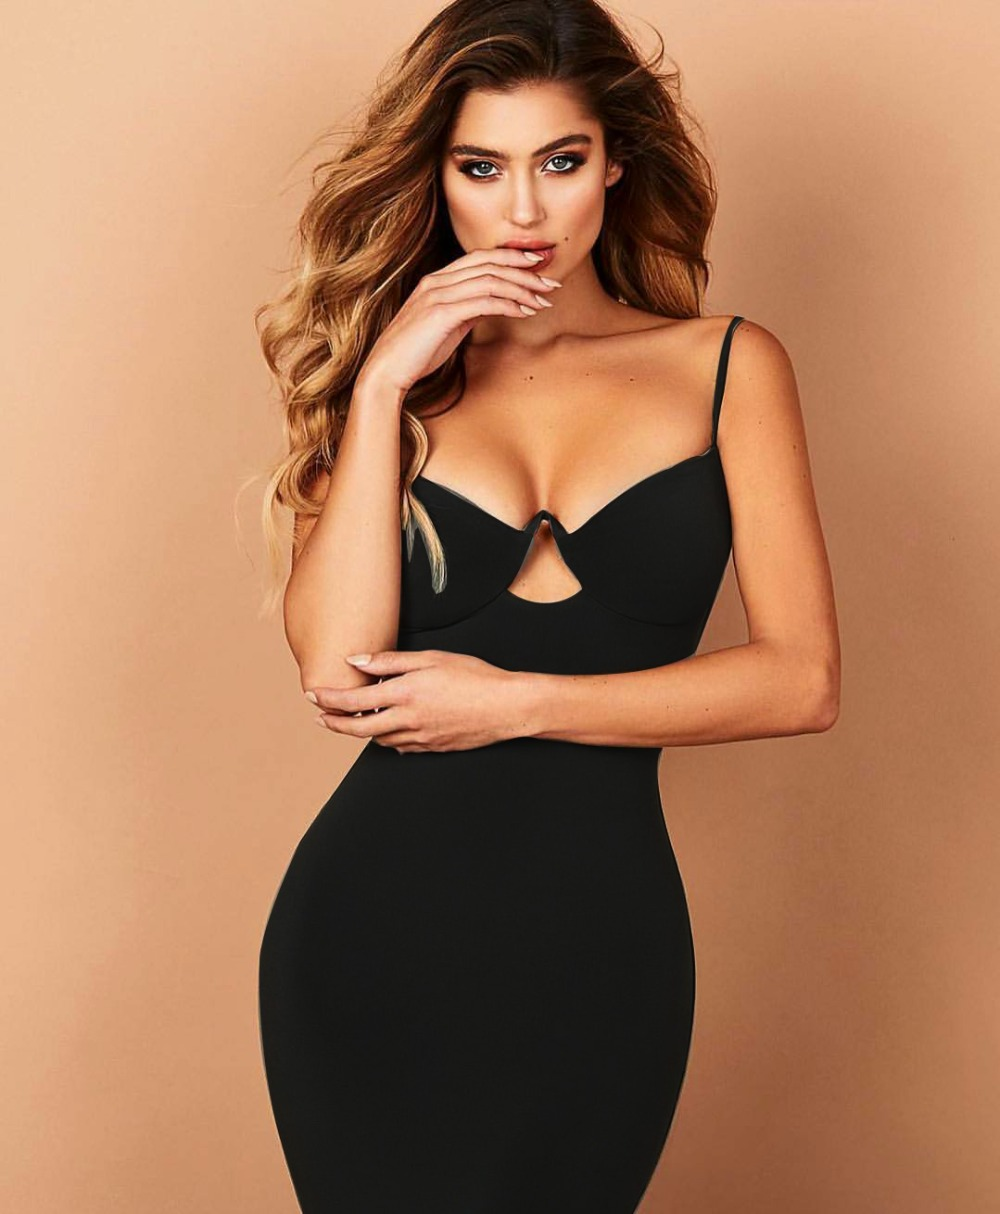 New Summer Fashion Sexy Strap Black Red Women Bandage Dress 2020 Celebrity DesignerBodycon Evening Party Dress Vestido 5